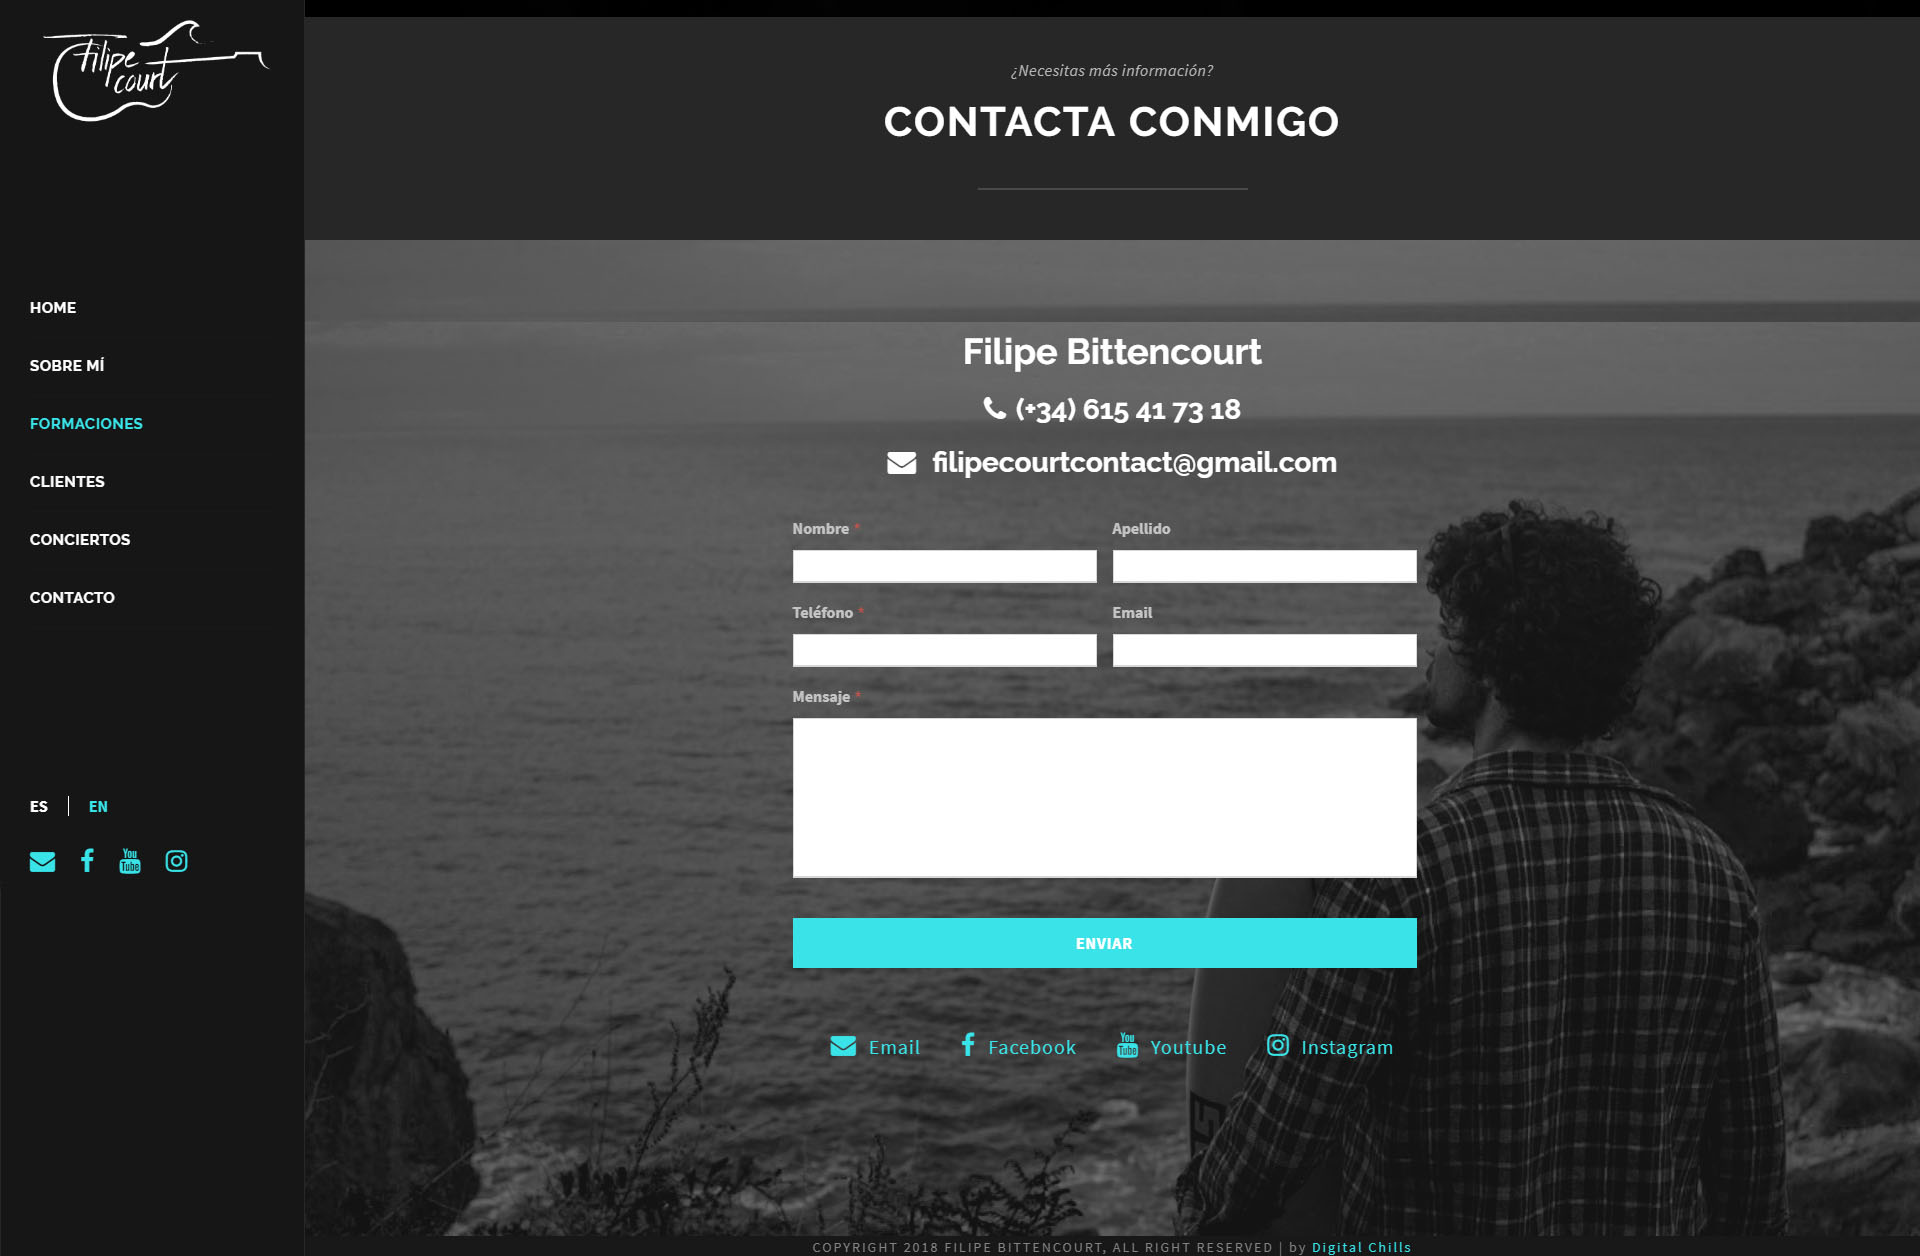 Portfolio Filipe Bittencourt | DIGITAL CHILLS Diseño & Marketing Digital